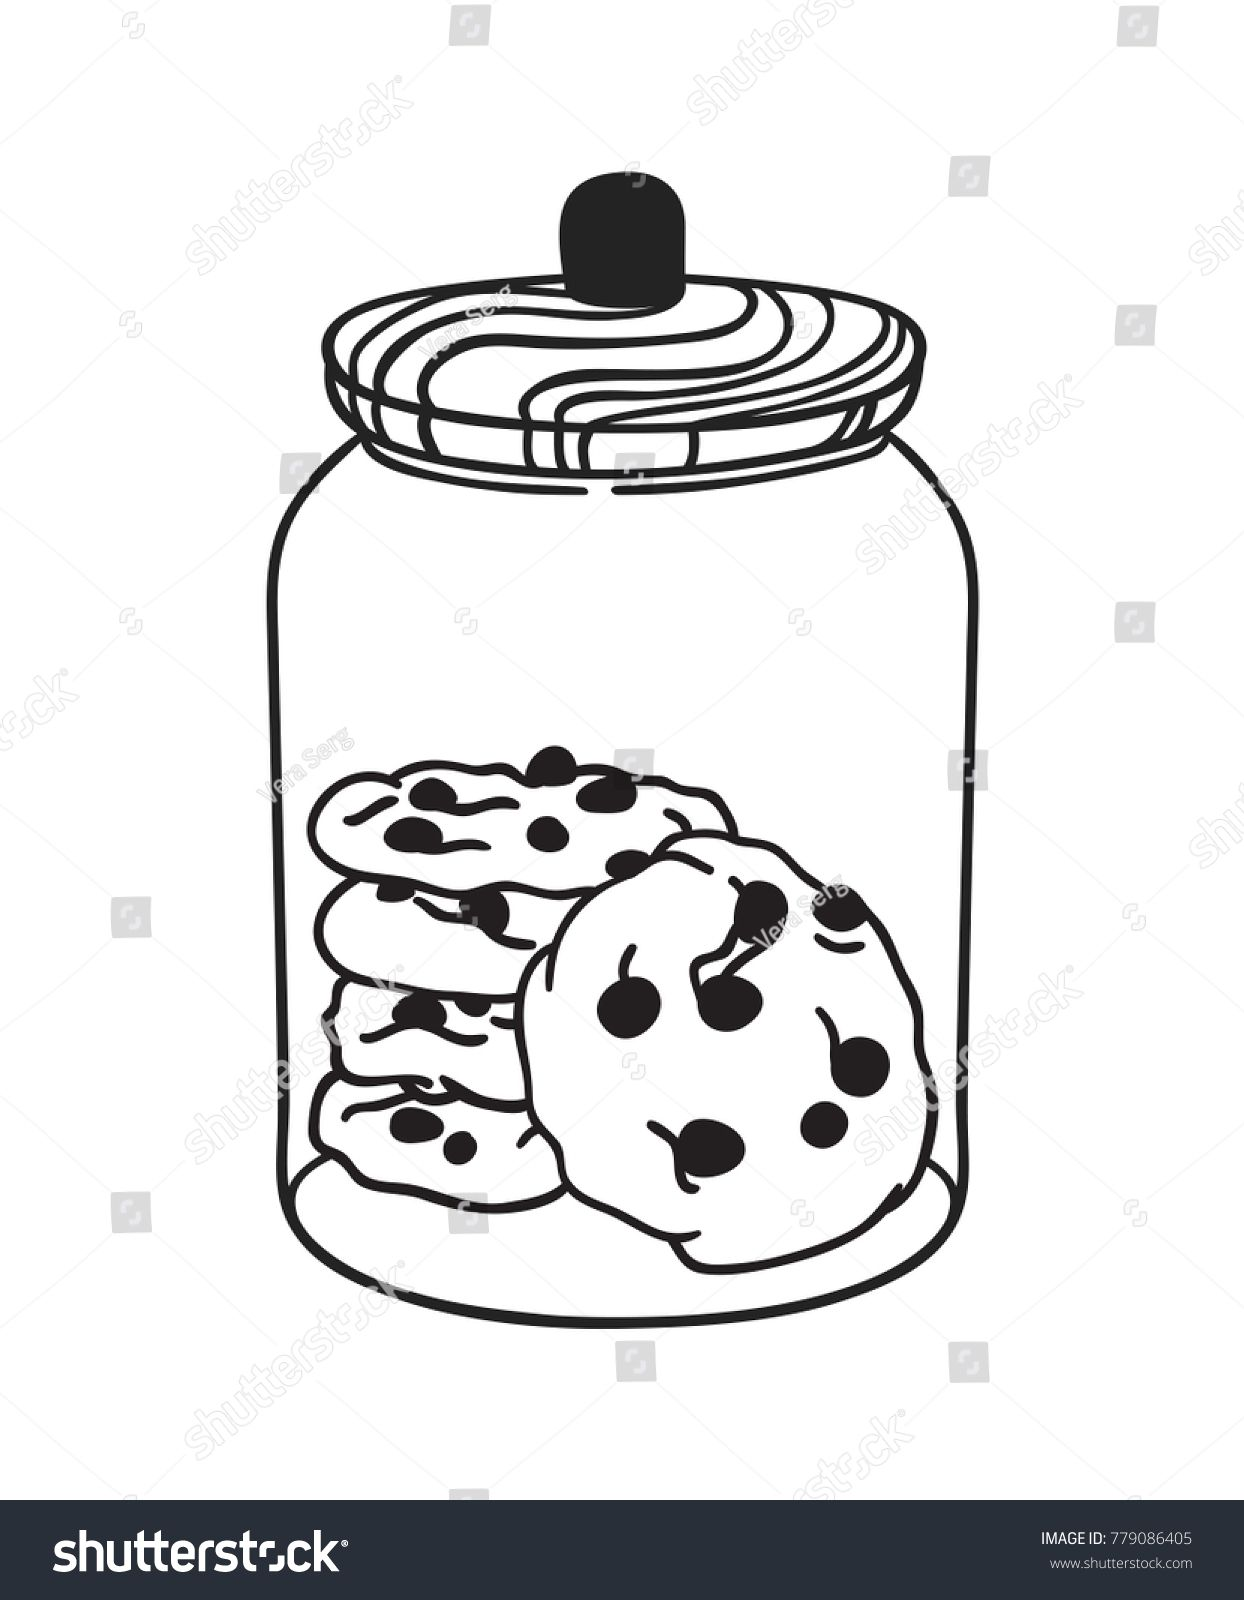 Hand Drawn Illustration Glass Jar And Cookies Creative Ink Art Work Actual Vector Drawing Bake Ad Cookie Drawing Drawing Illustration How To Draw Hands